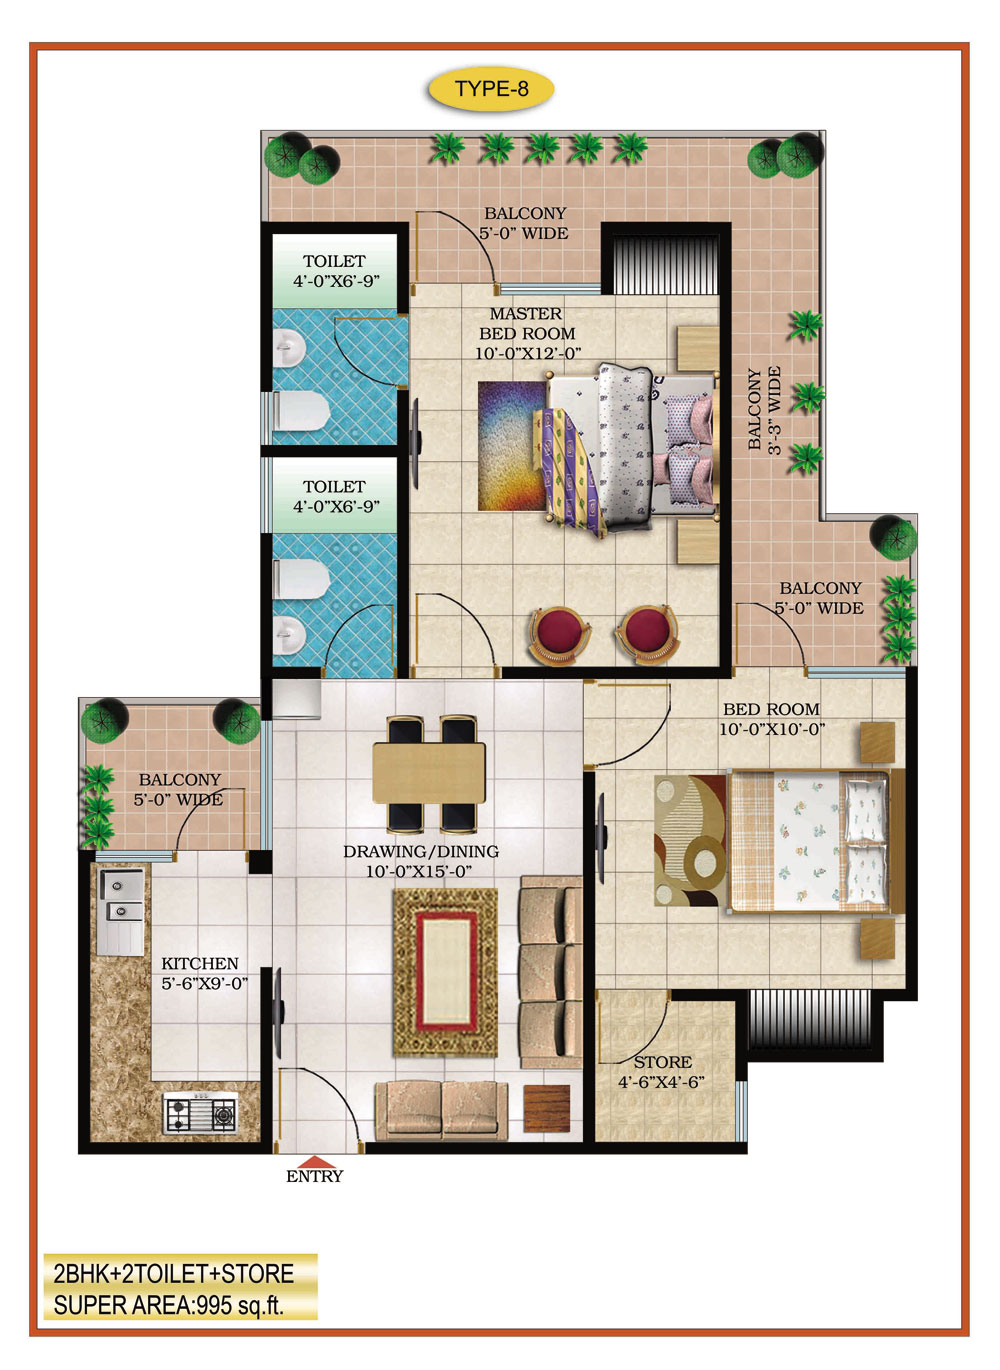 High End Group Raj Nagar Extension floor plan 895 sq. ft.